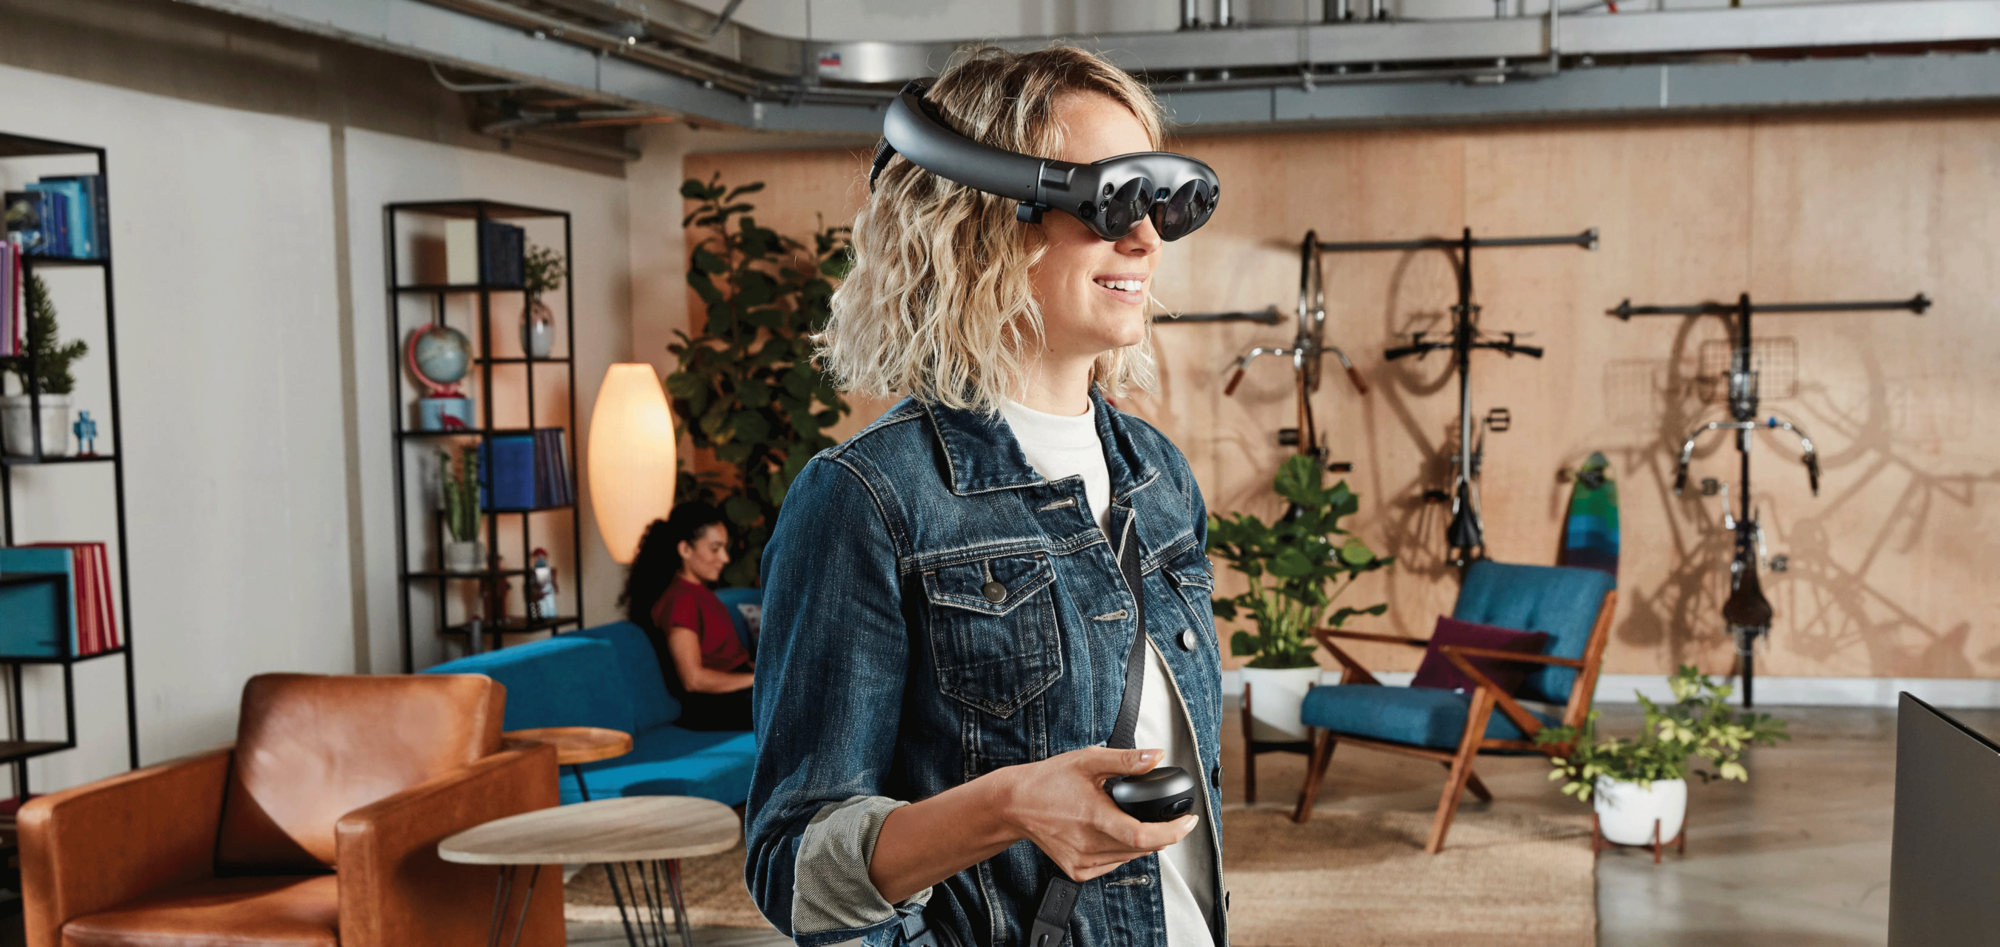 An open letter to Magic Leap and the future of augmented reality